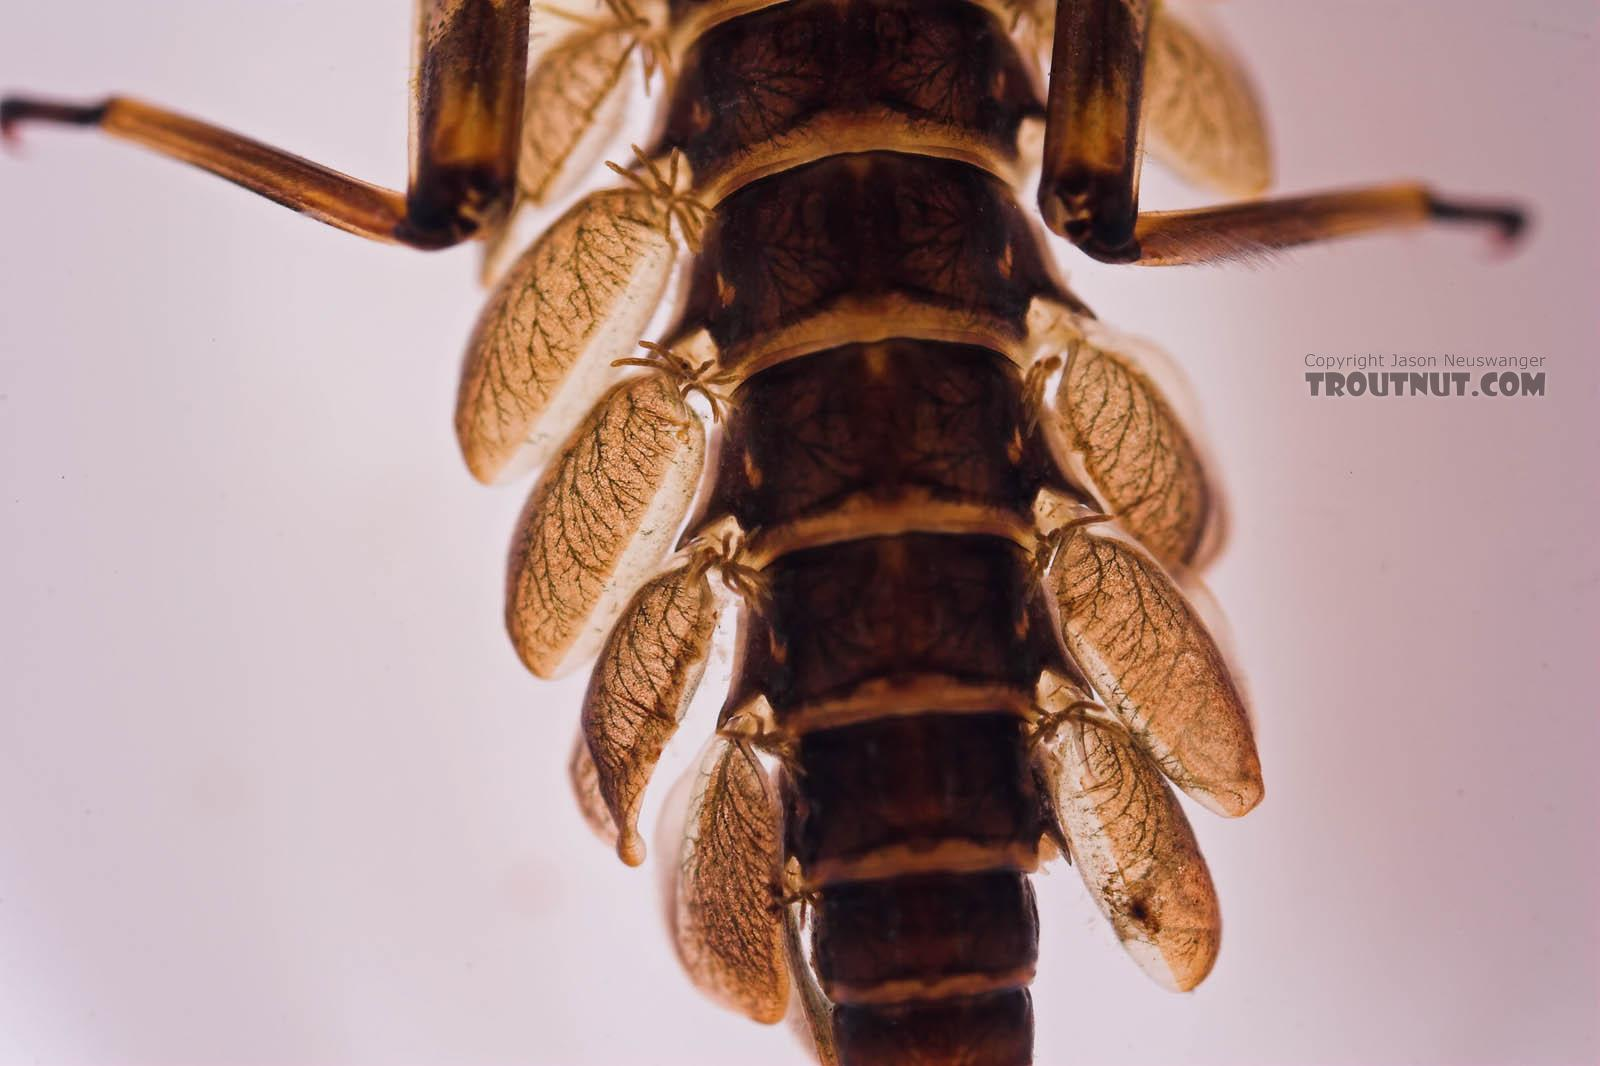 Epeorus pleuralis (Quill Gordon) Mayfly Nymph from Mongaup Creek in New York